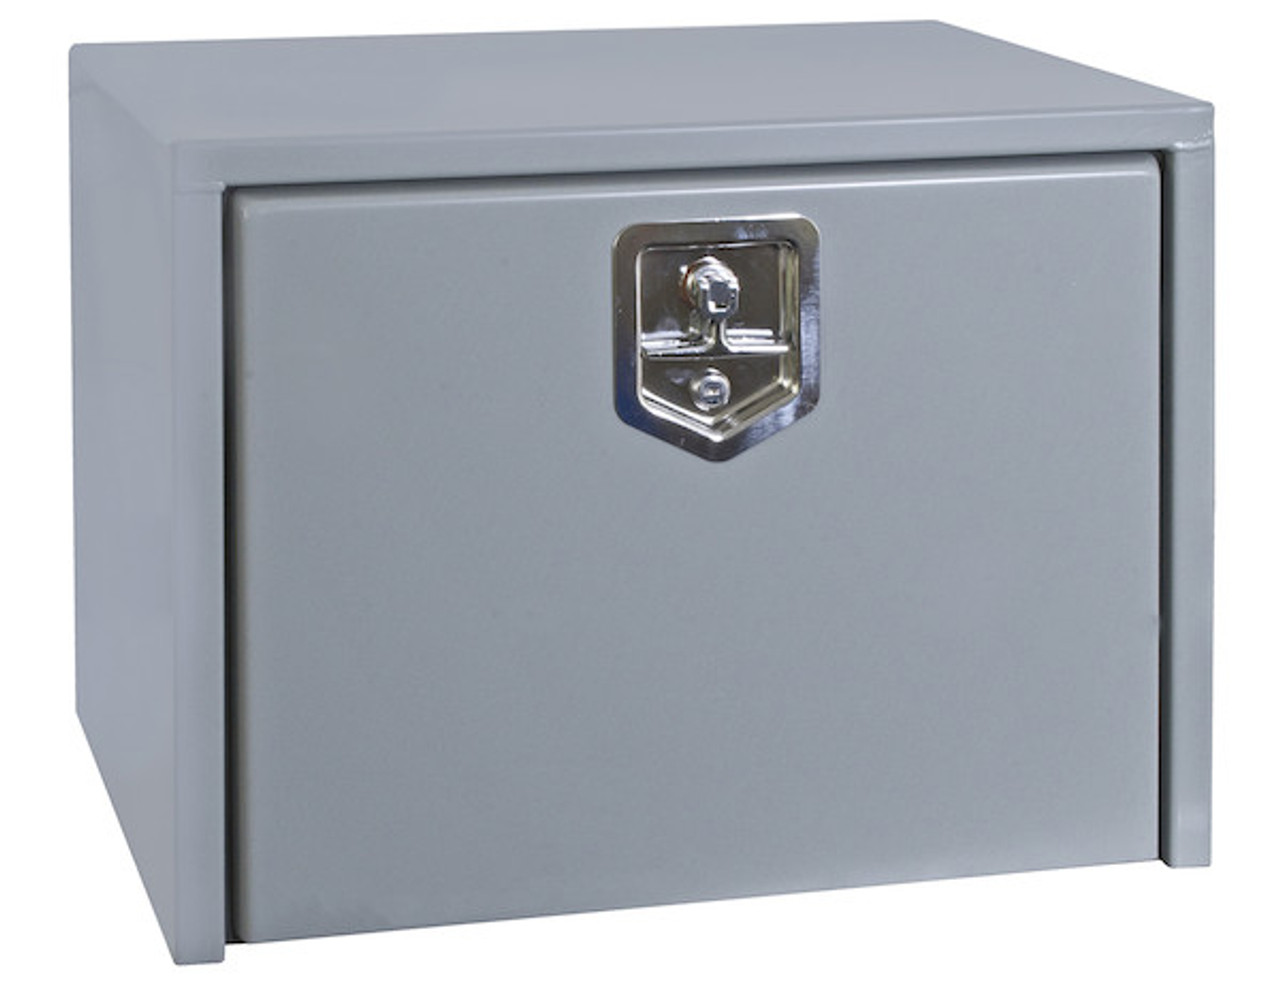 1703900 BUYERS PRODUCTS PRIMED STEEL UNDERBODY TRUCK BOX TOOLBOX